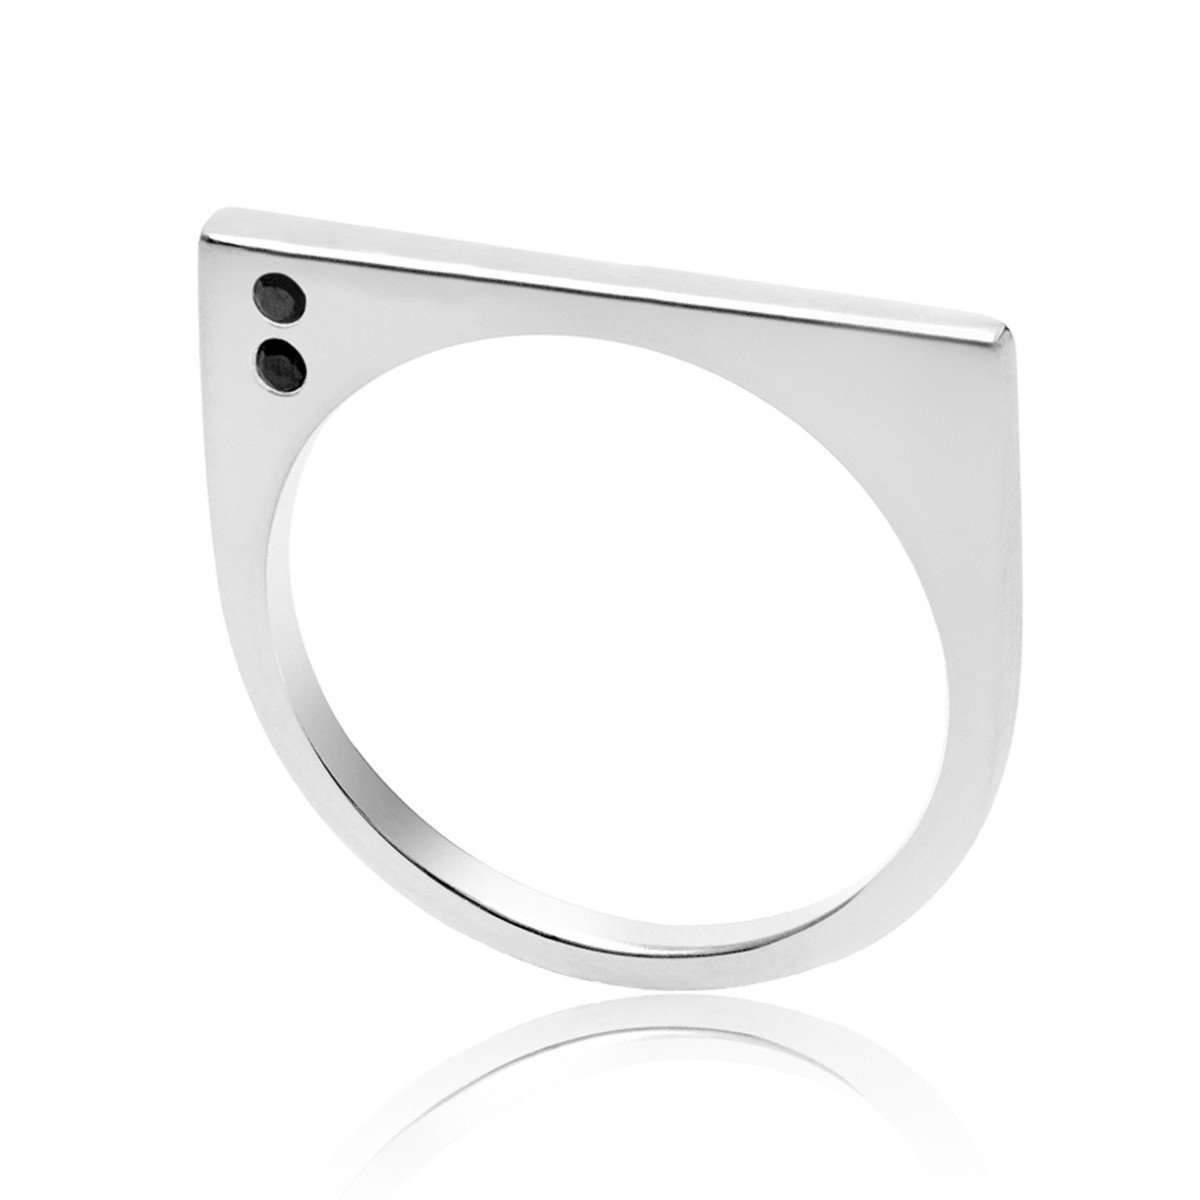 Neola Lunaria Silver Ring - UK P - US 7 1/2 - EU 56 1/2 UXyqS